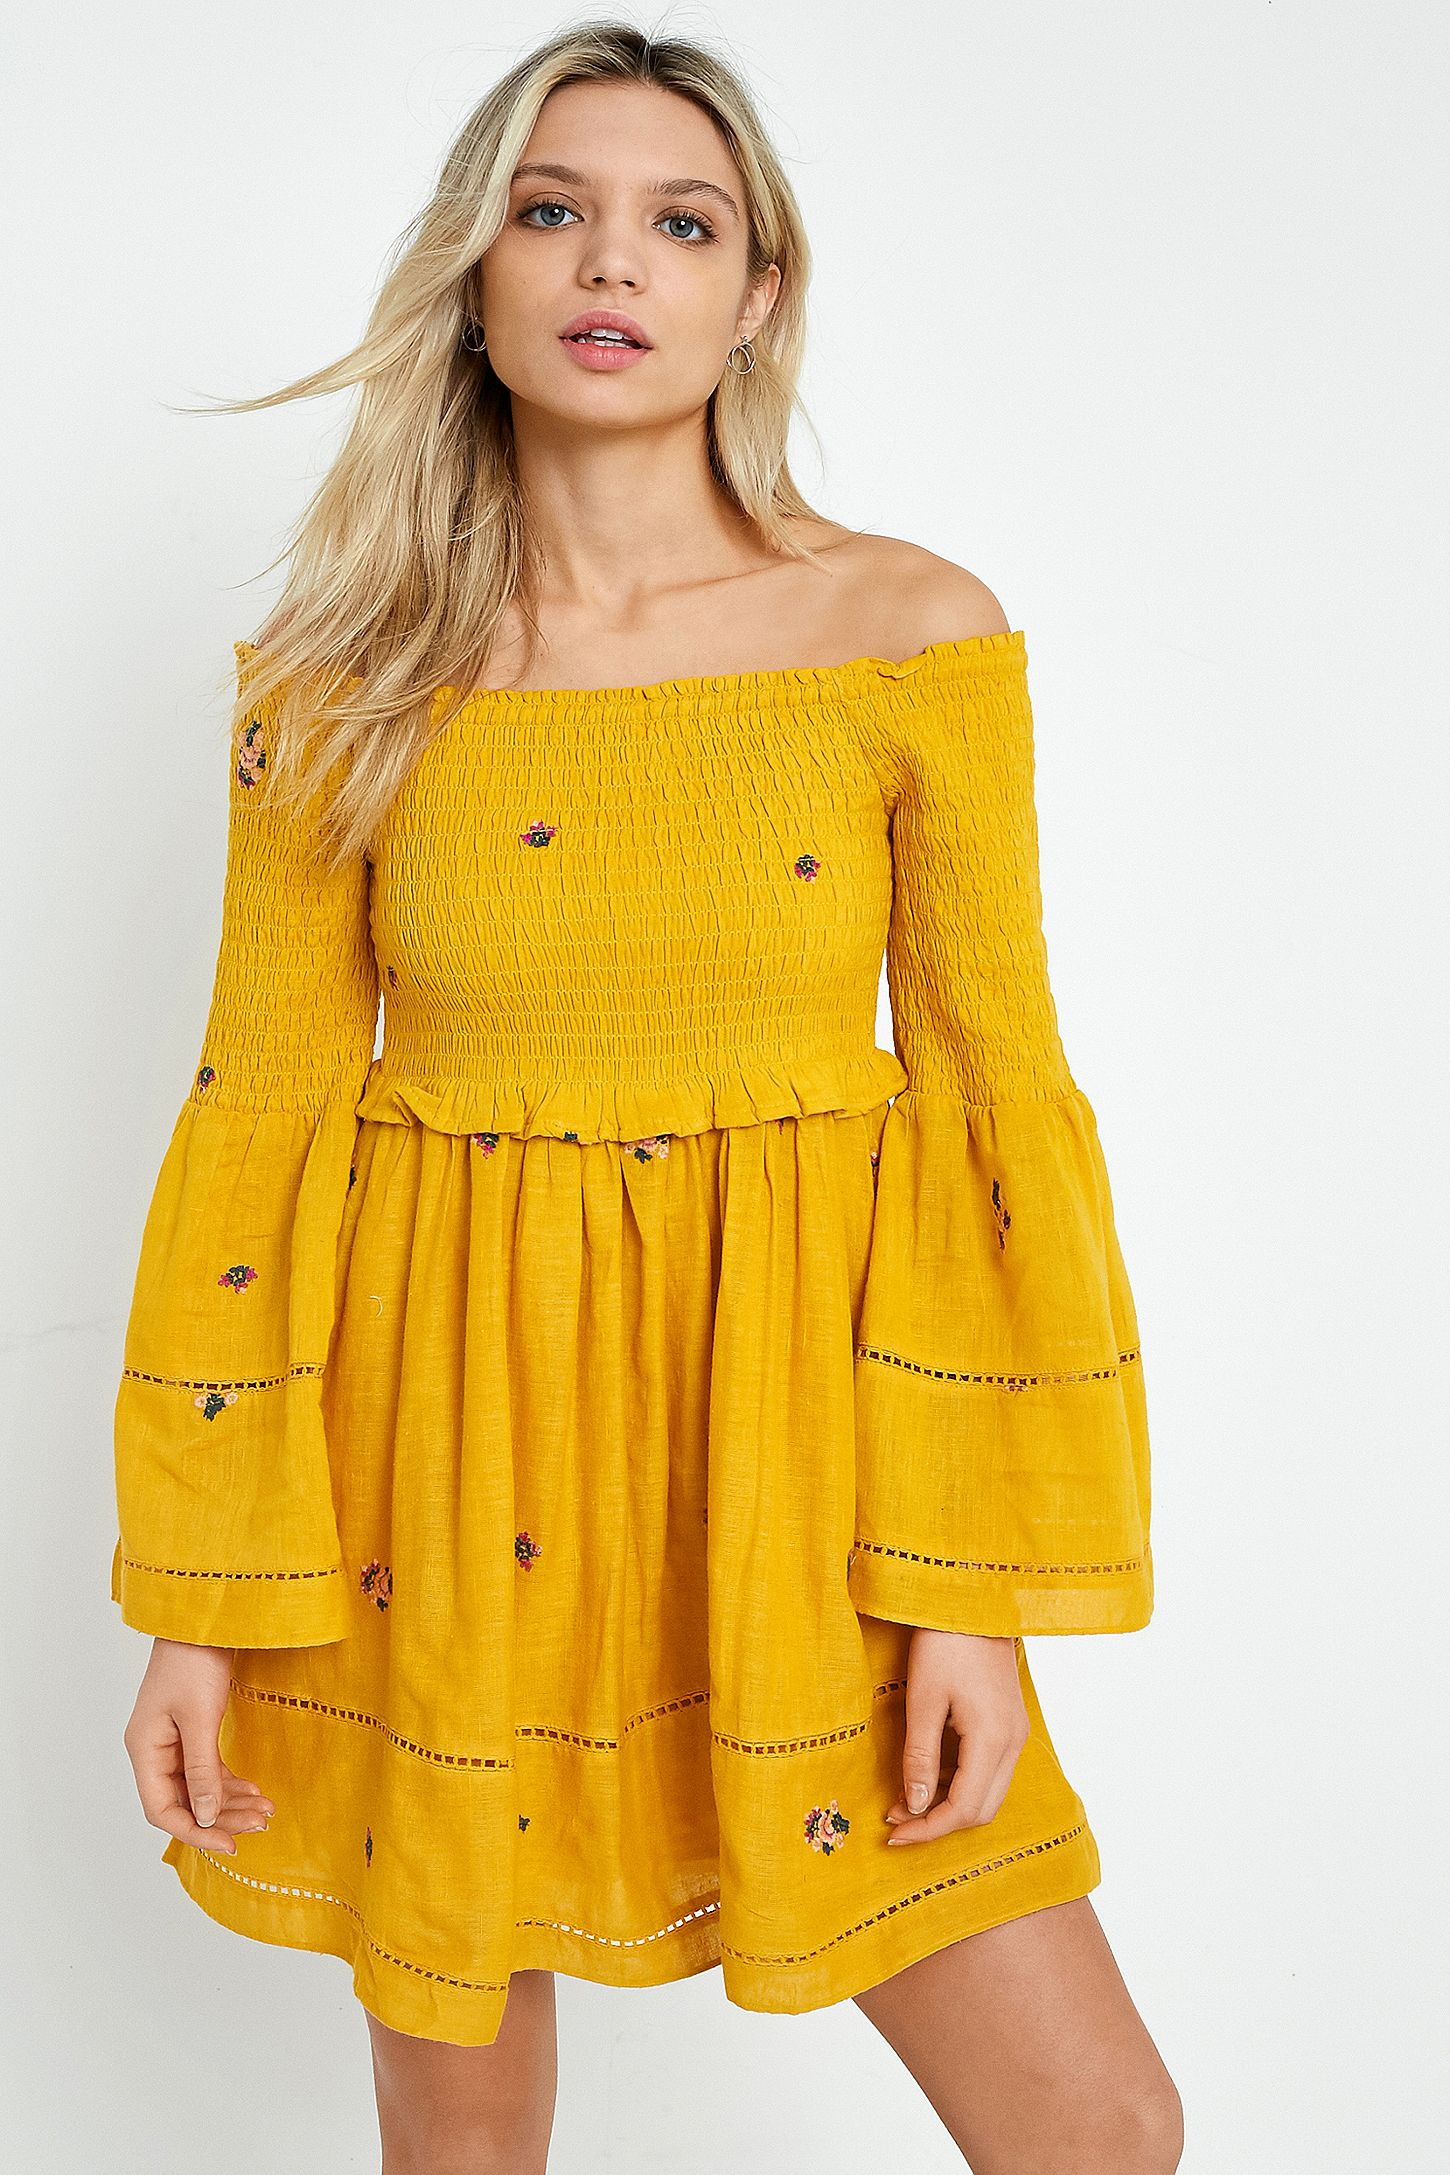 16a71cb7def4 Free People Counting Daisies Yellow Embroidered Off-the-Shoulder ...